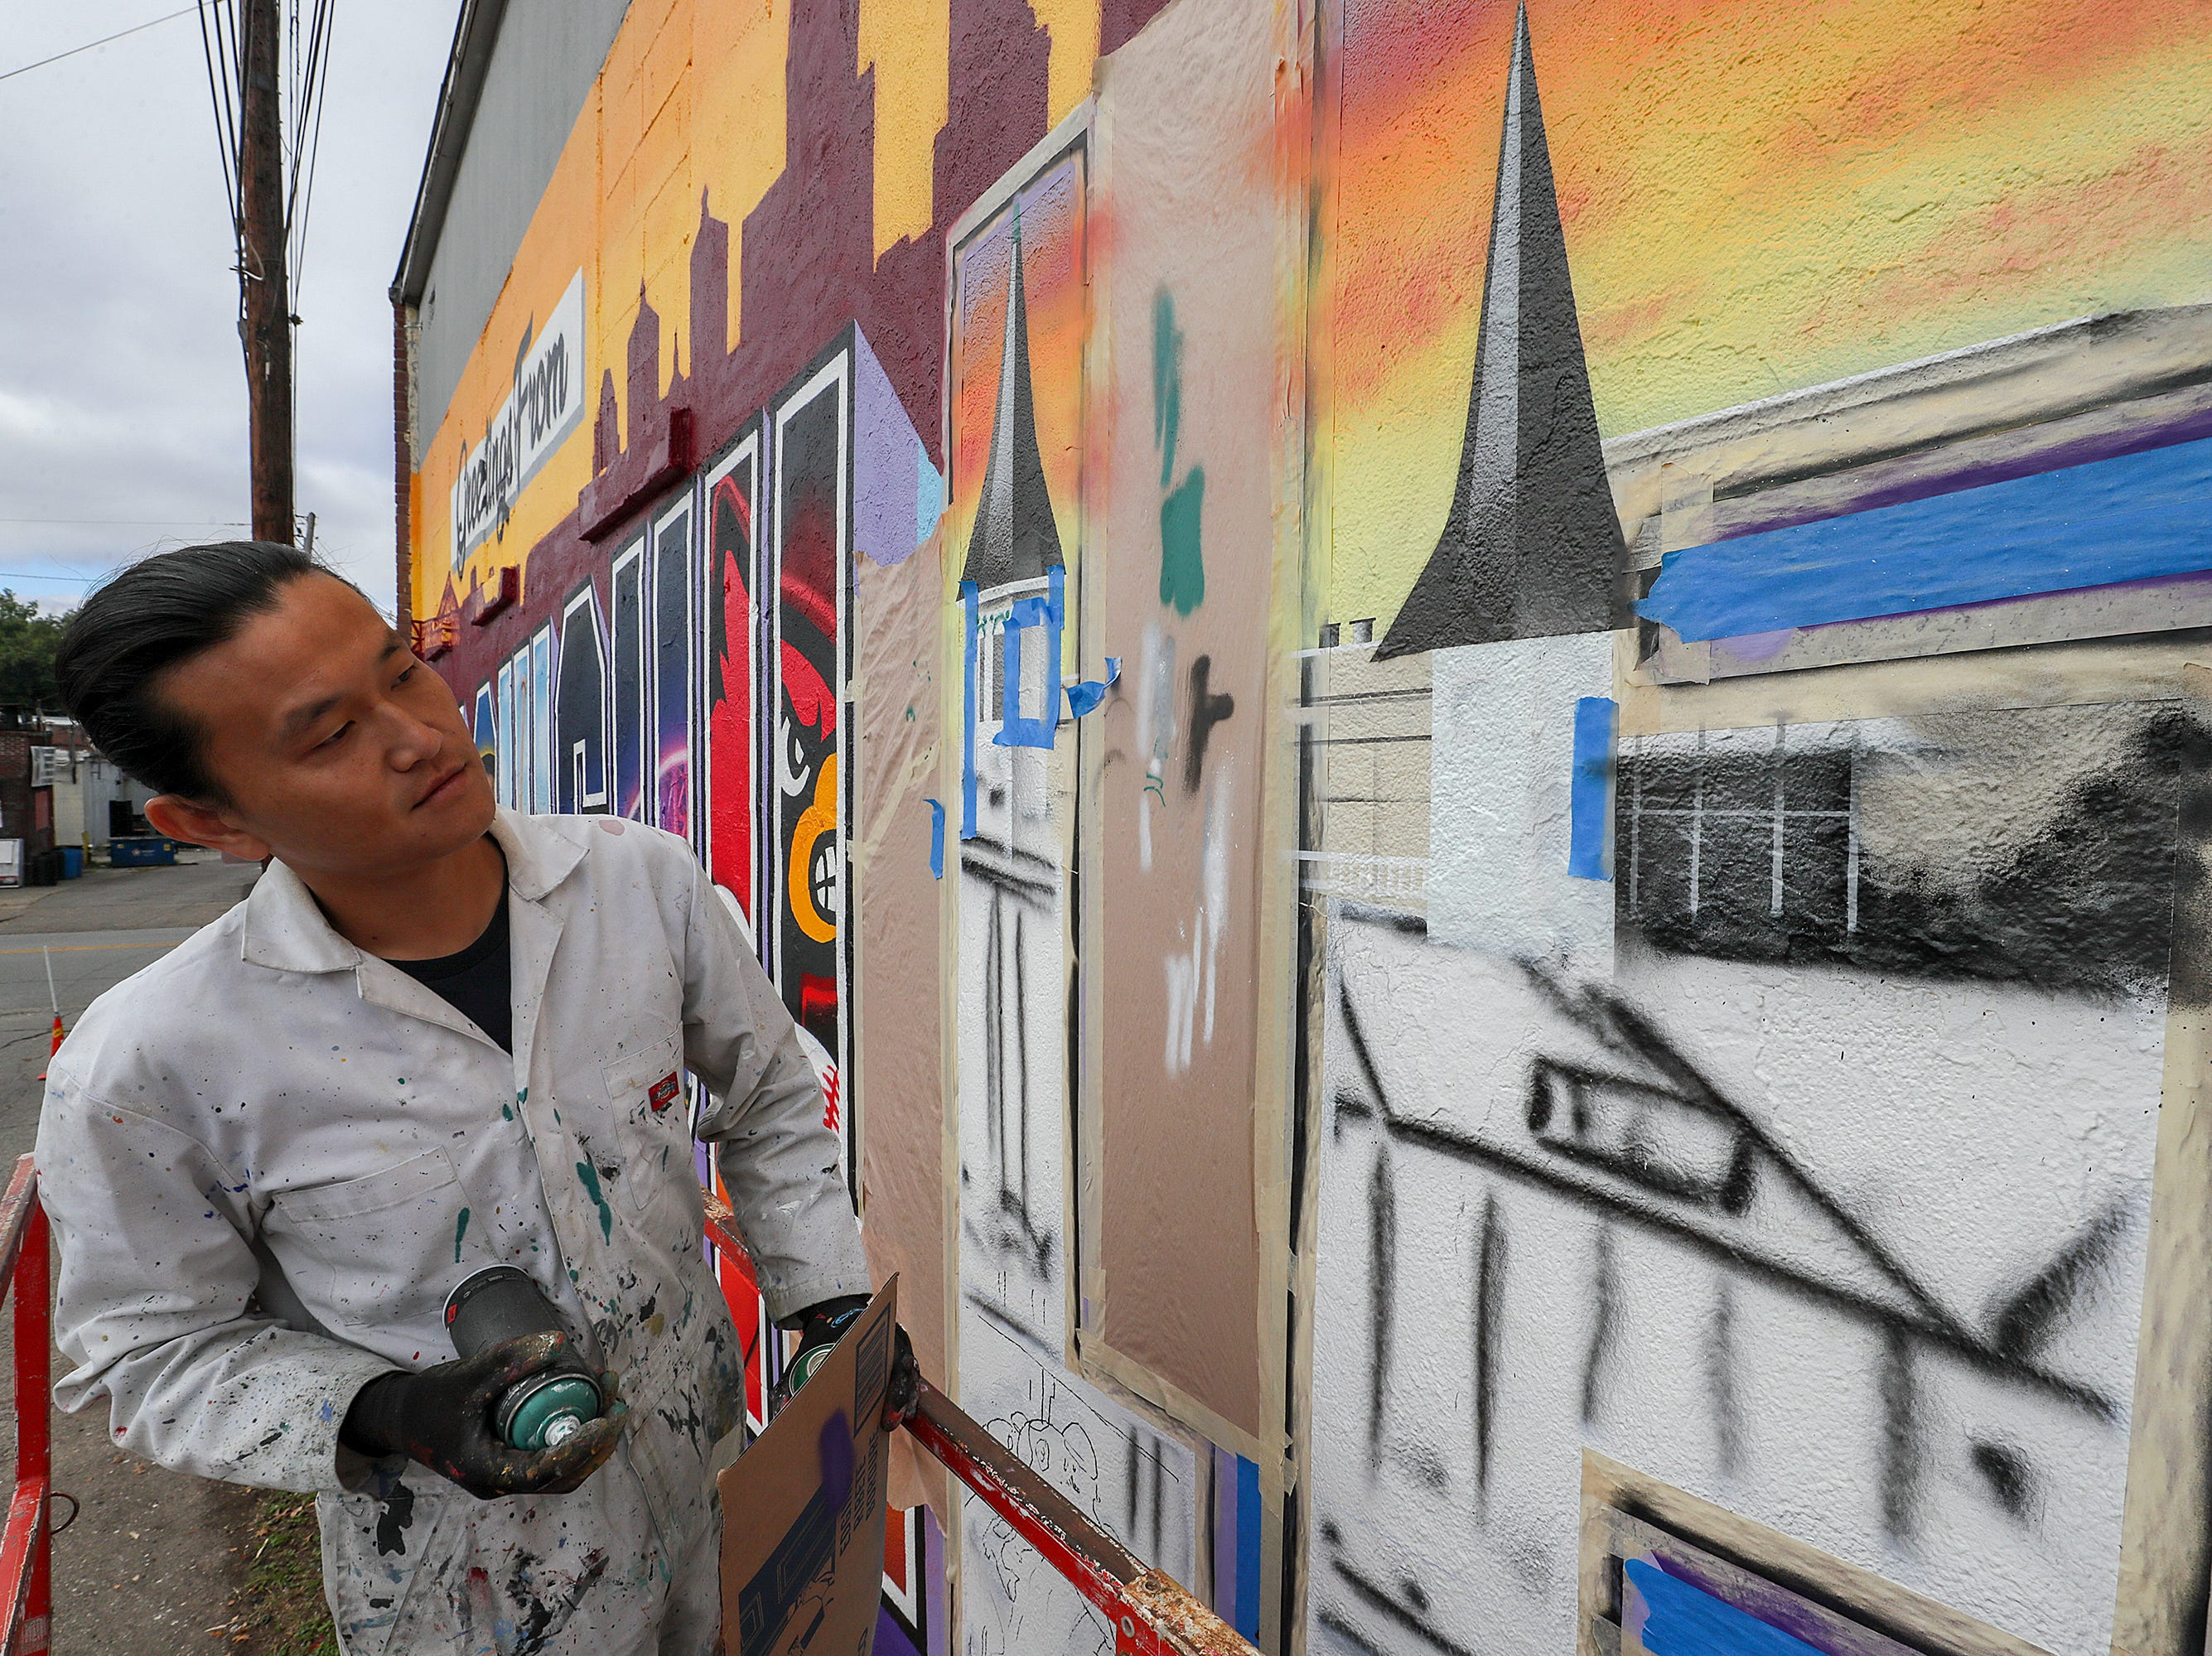 Artist Victor Ving regards his work as he puts the finishing touches on a mural on Central Avenue on Thursday morning.  The mural pays homage to post cards and is part of the Greetings Tour with photographer Lisa Beggs.  The pair have created 32 murals in 16 states with a goal of creating one in every state.  This is the first one in Kentucky.  The pair were in Alaska before coming to Louisville.  The building belongs to John and Mary Kay Dixon.  The group Often Seen Rarely Spoken also created some of the letters that depict the Louisville skyline, bourbon, Churchill Downs, Louisville Slugger, Louisville Cardinals and the Big Four Pedestrian Bridge.